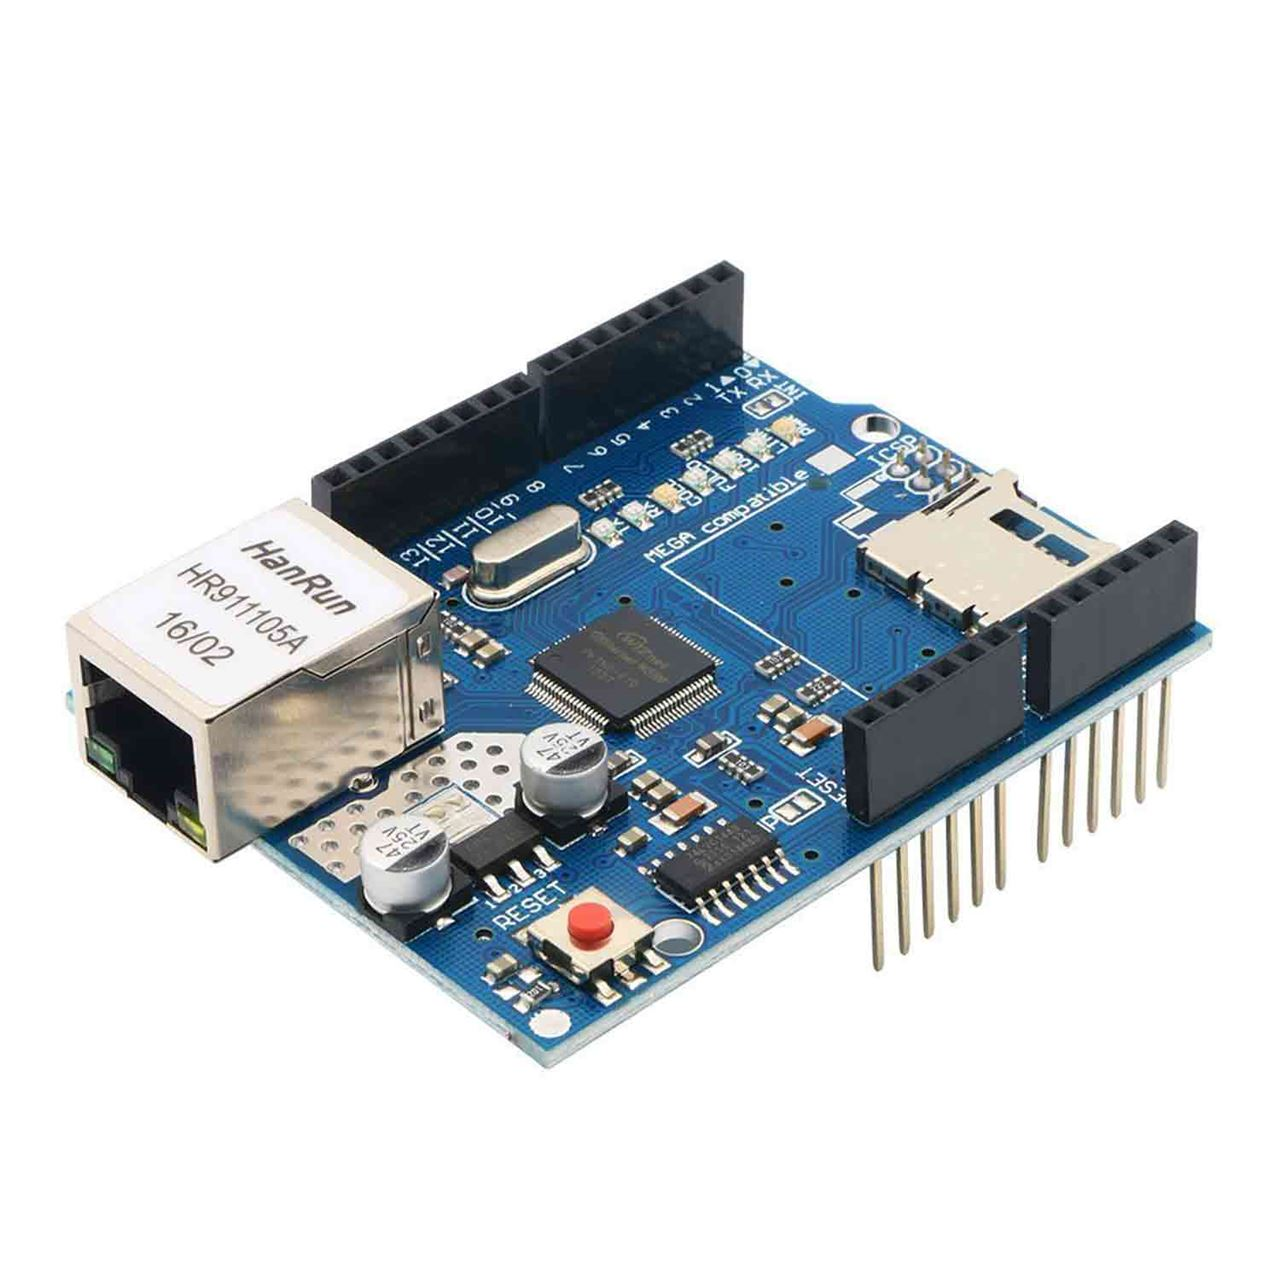 Arduino uno projects adraxx ethernet shield hobby and you